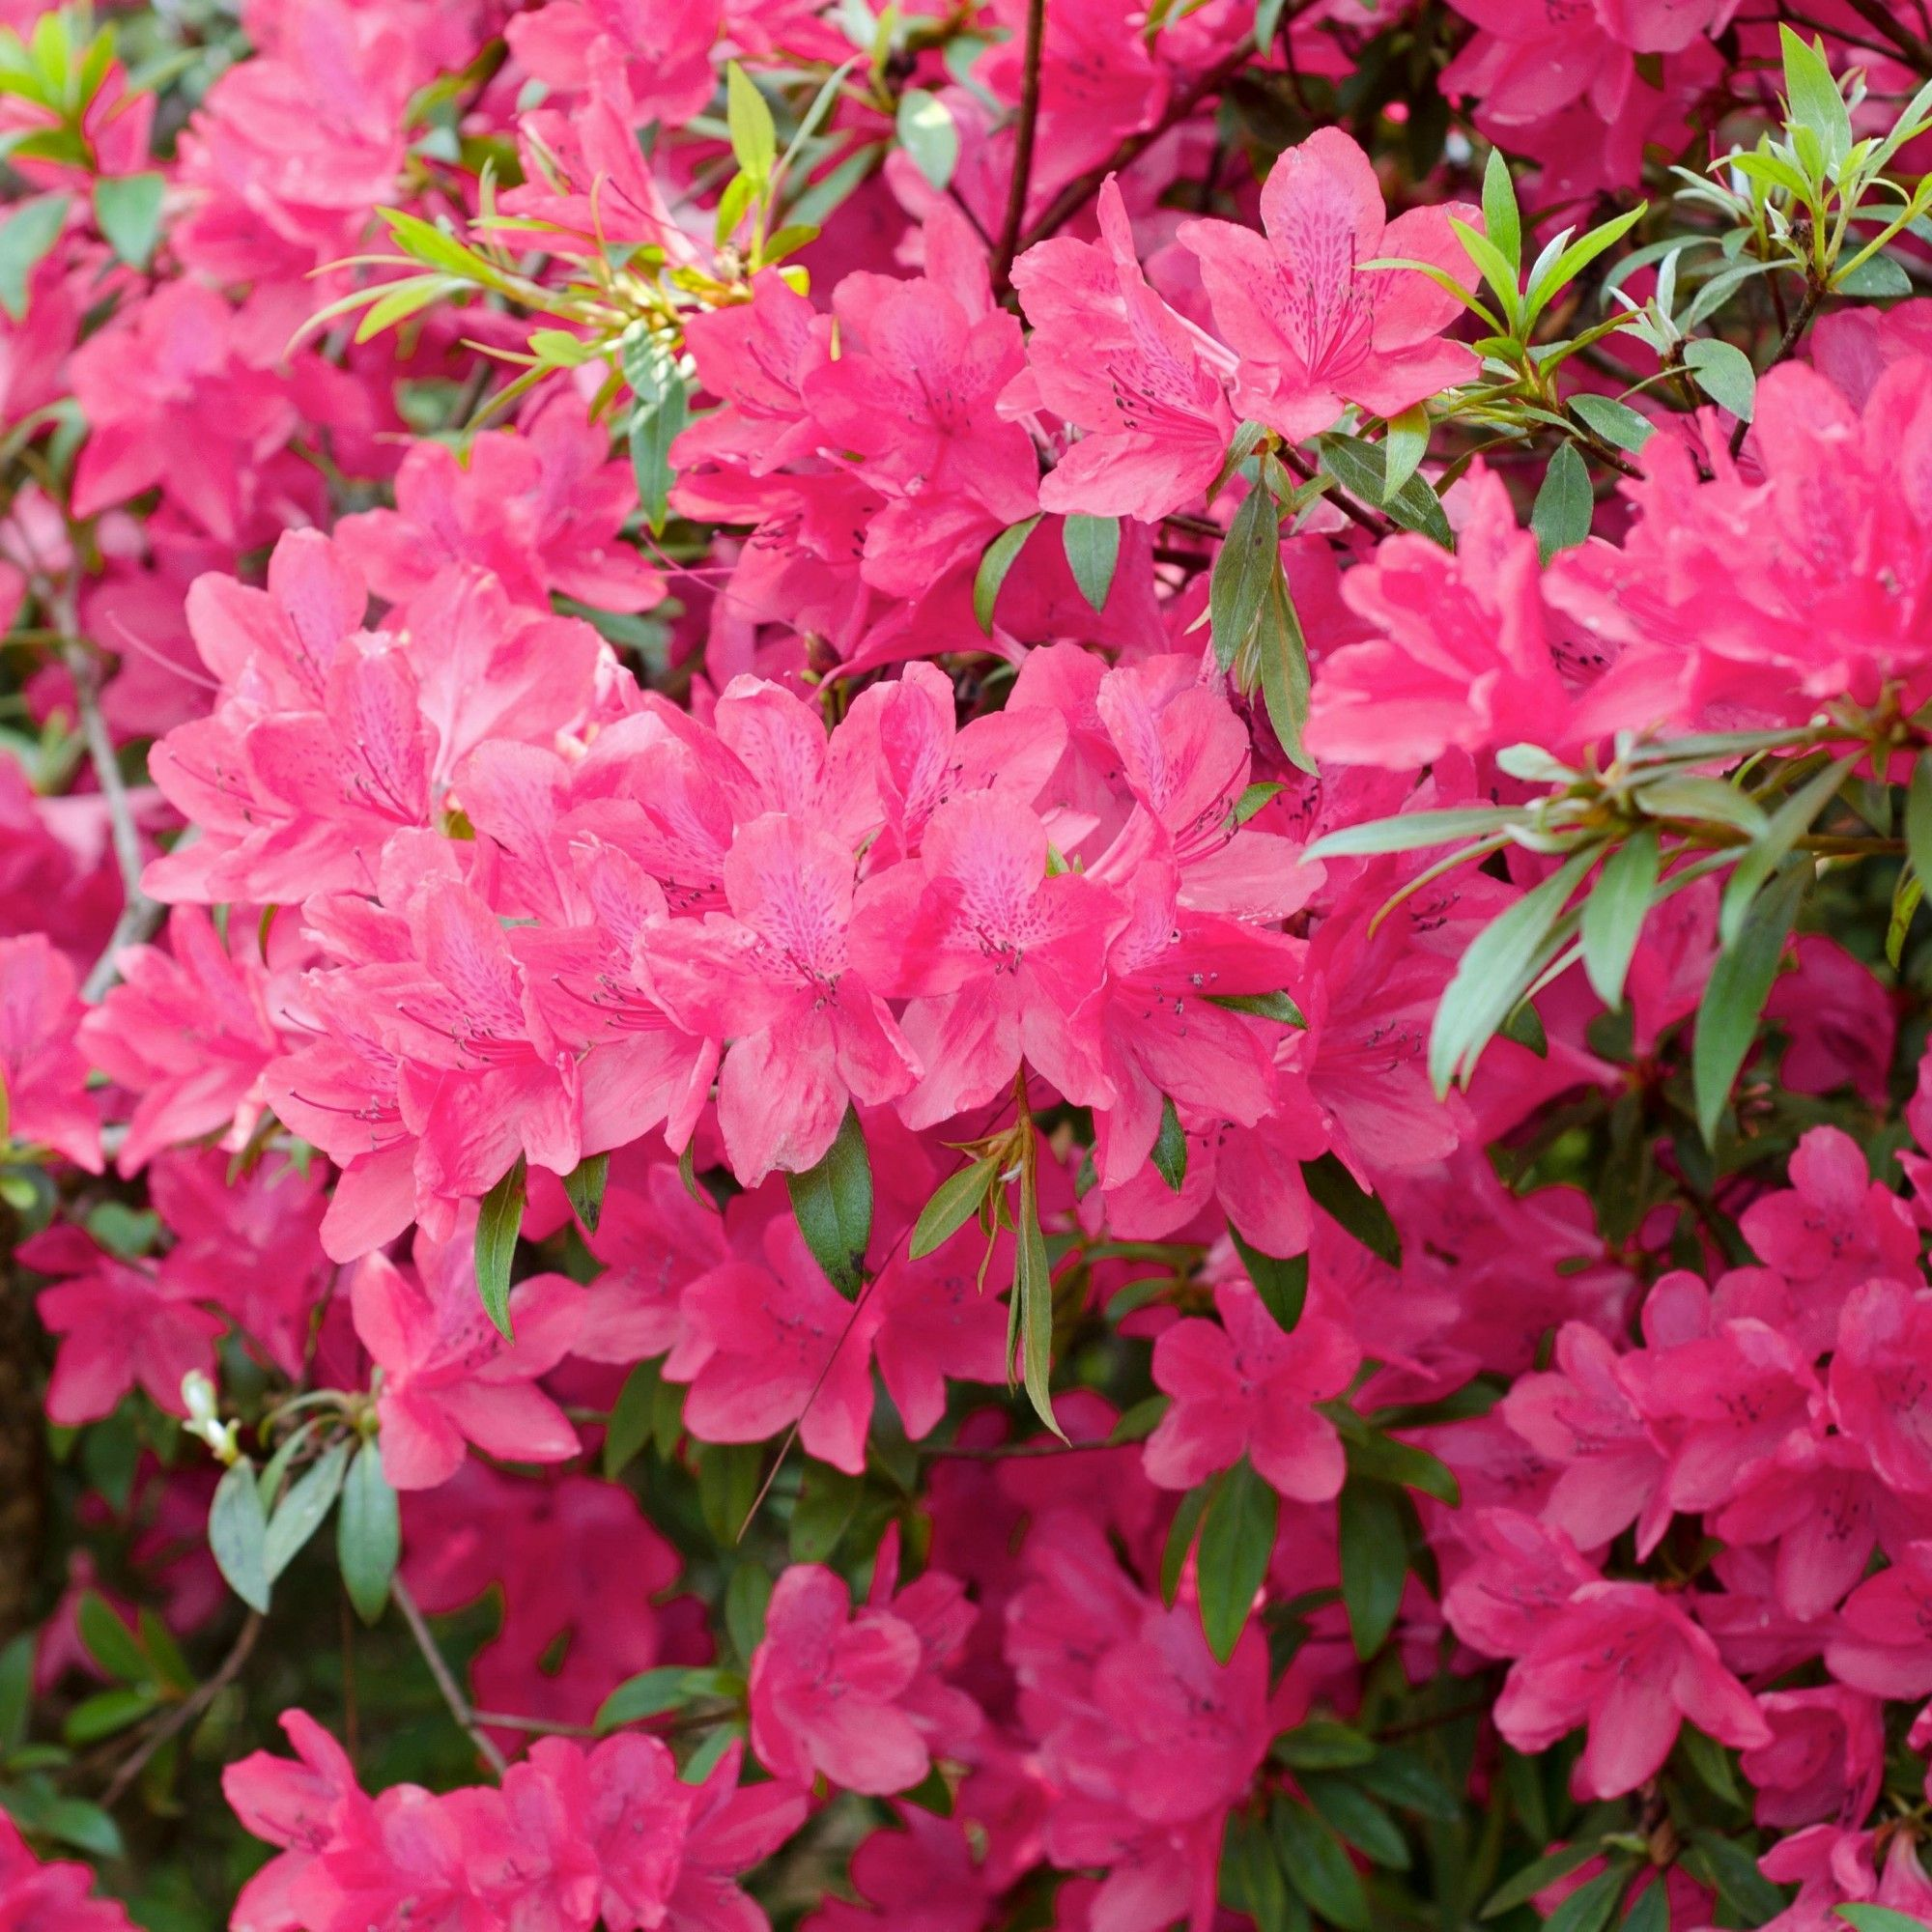 Azalea Chinana 2 5qt U S D A Hardiness Zones 6 9 1pc National Plant Network Pink Dogwood Tree Azaleas Flowering Shrubs